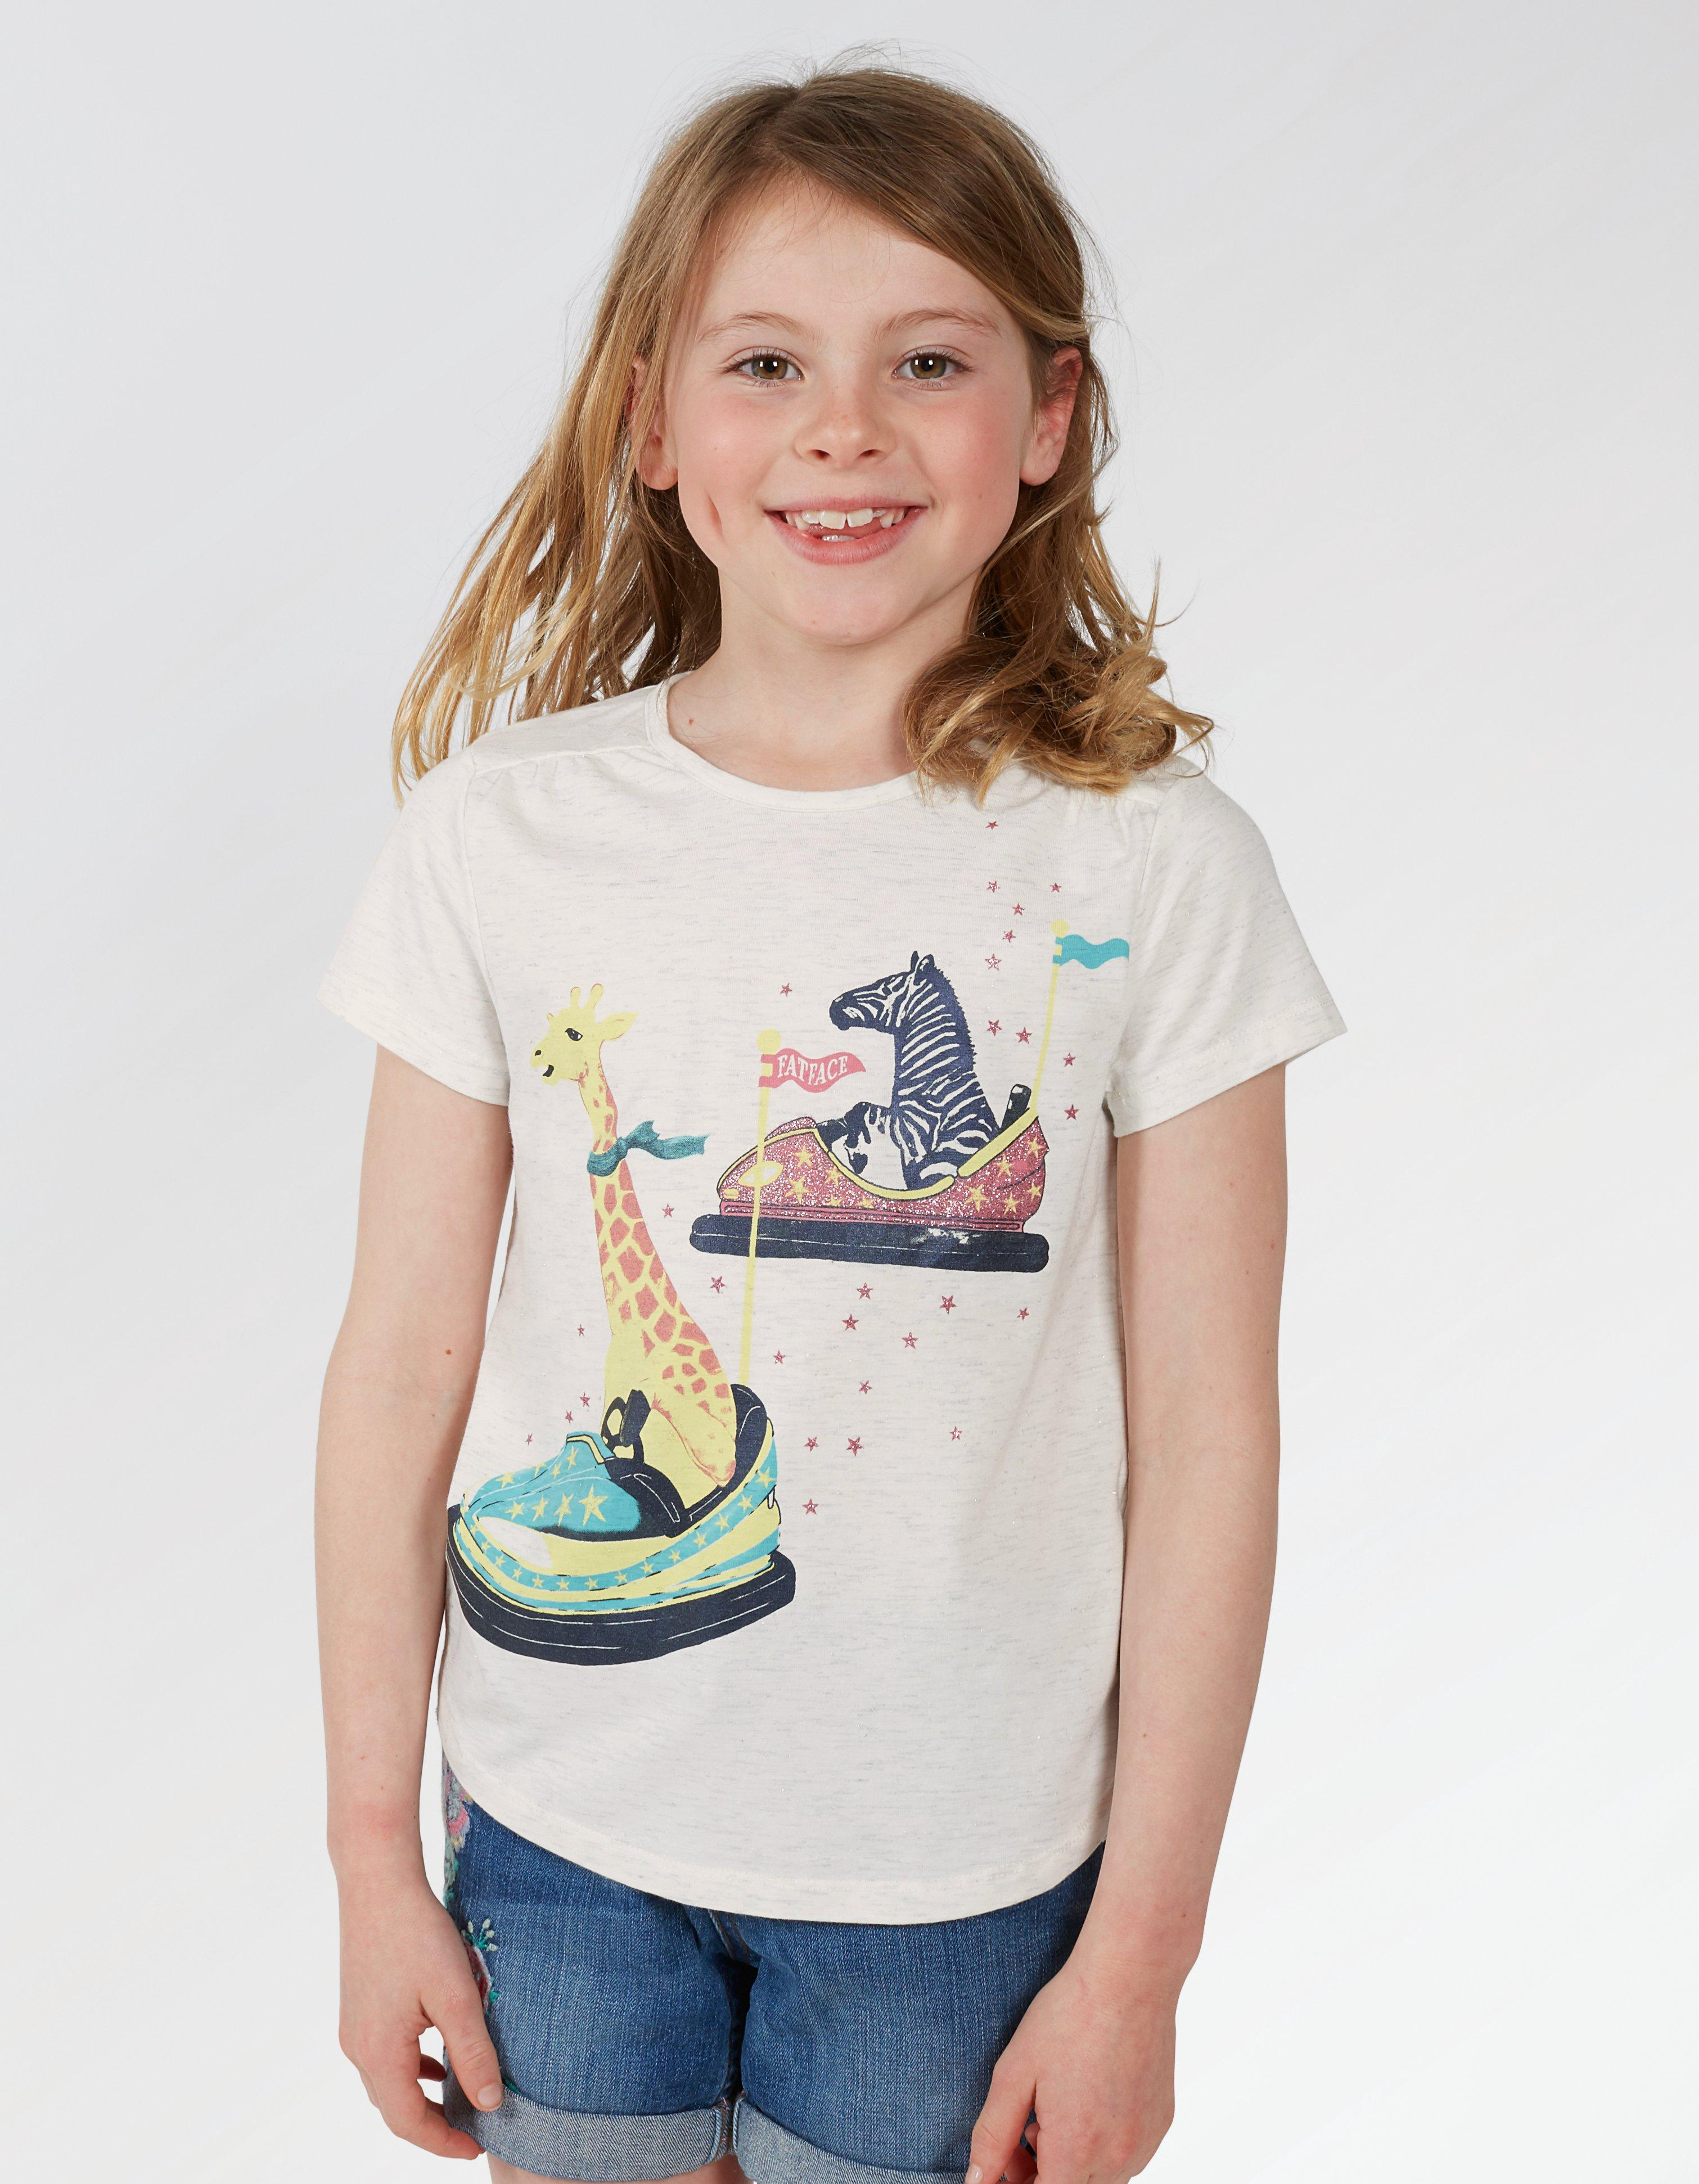 Bumper Car Graphic T Shirt